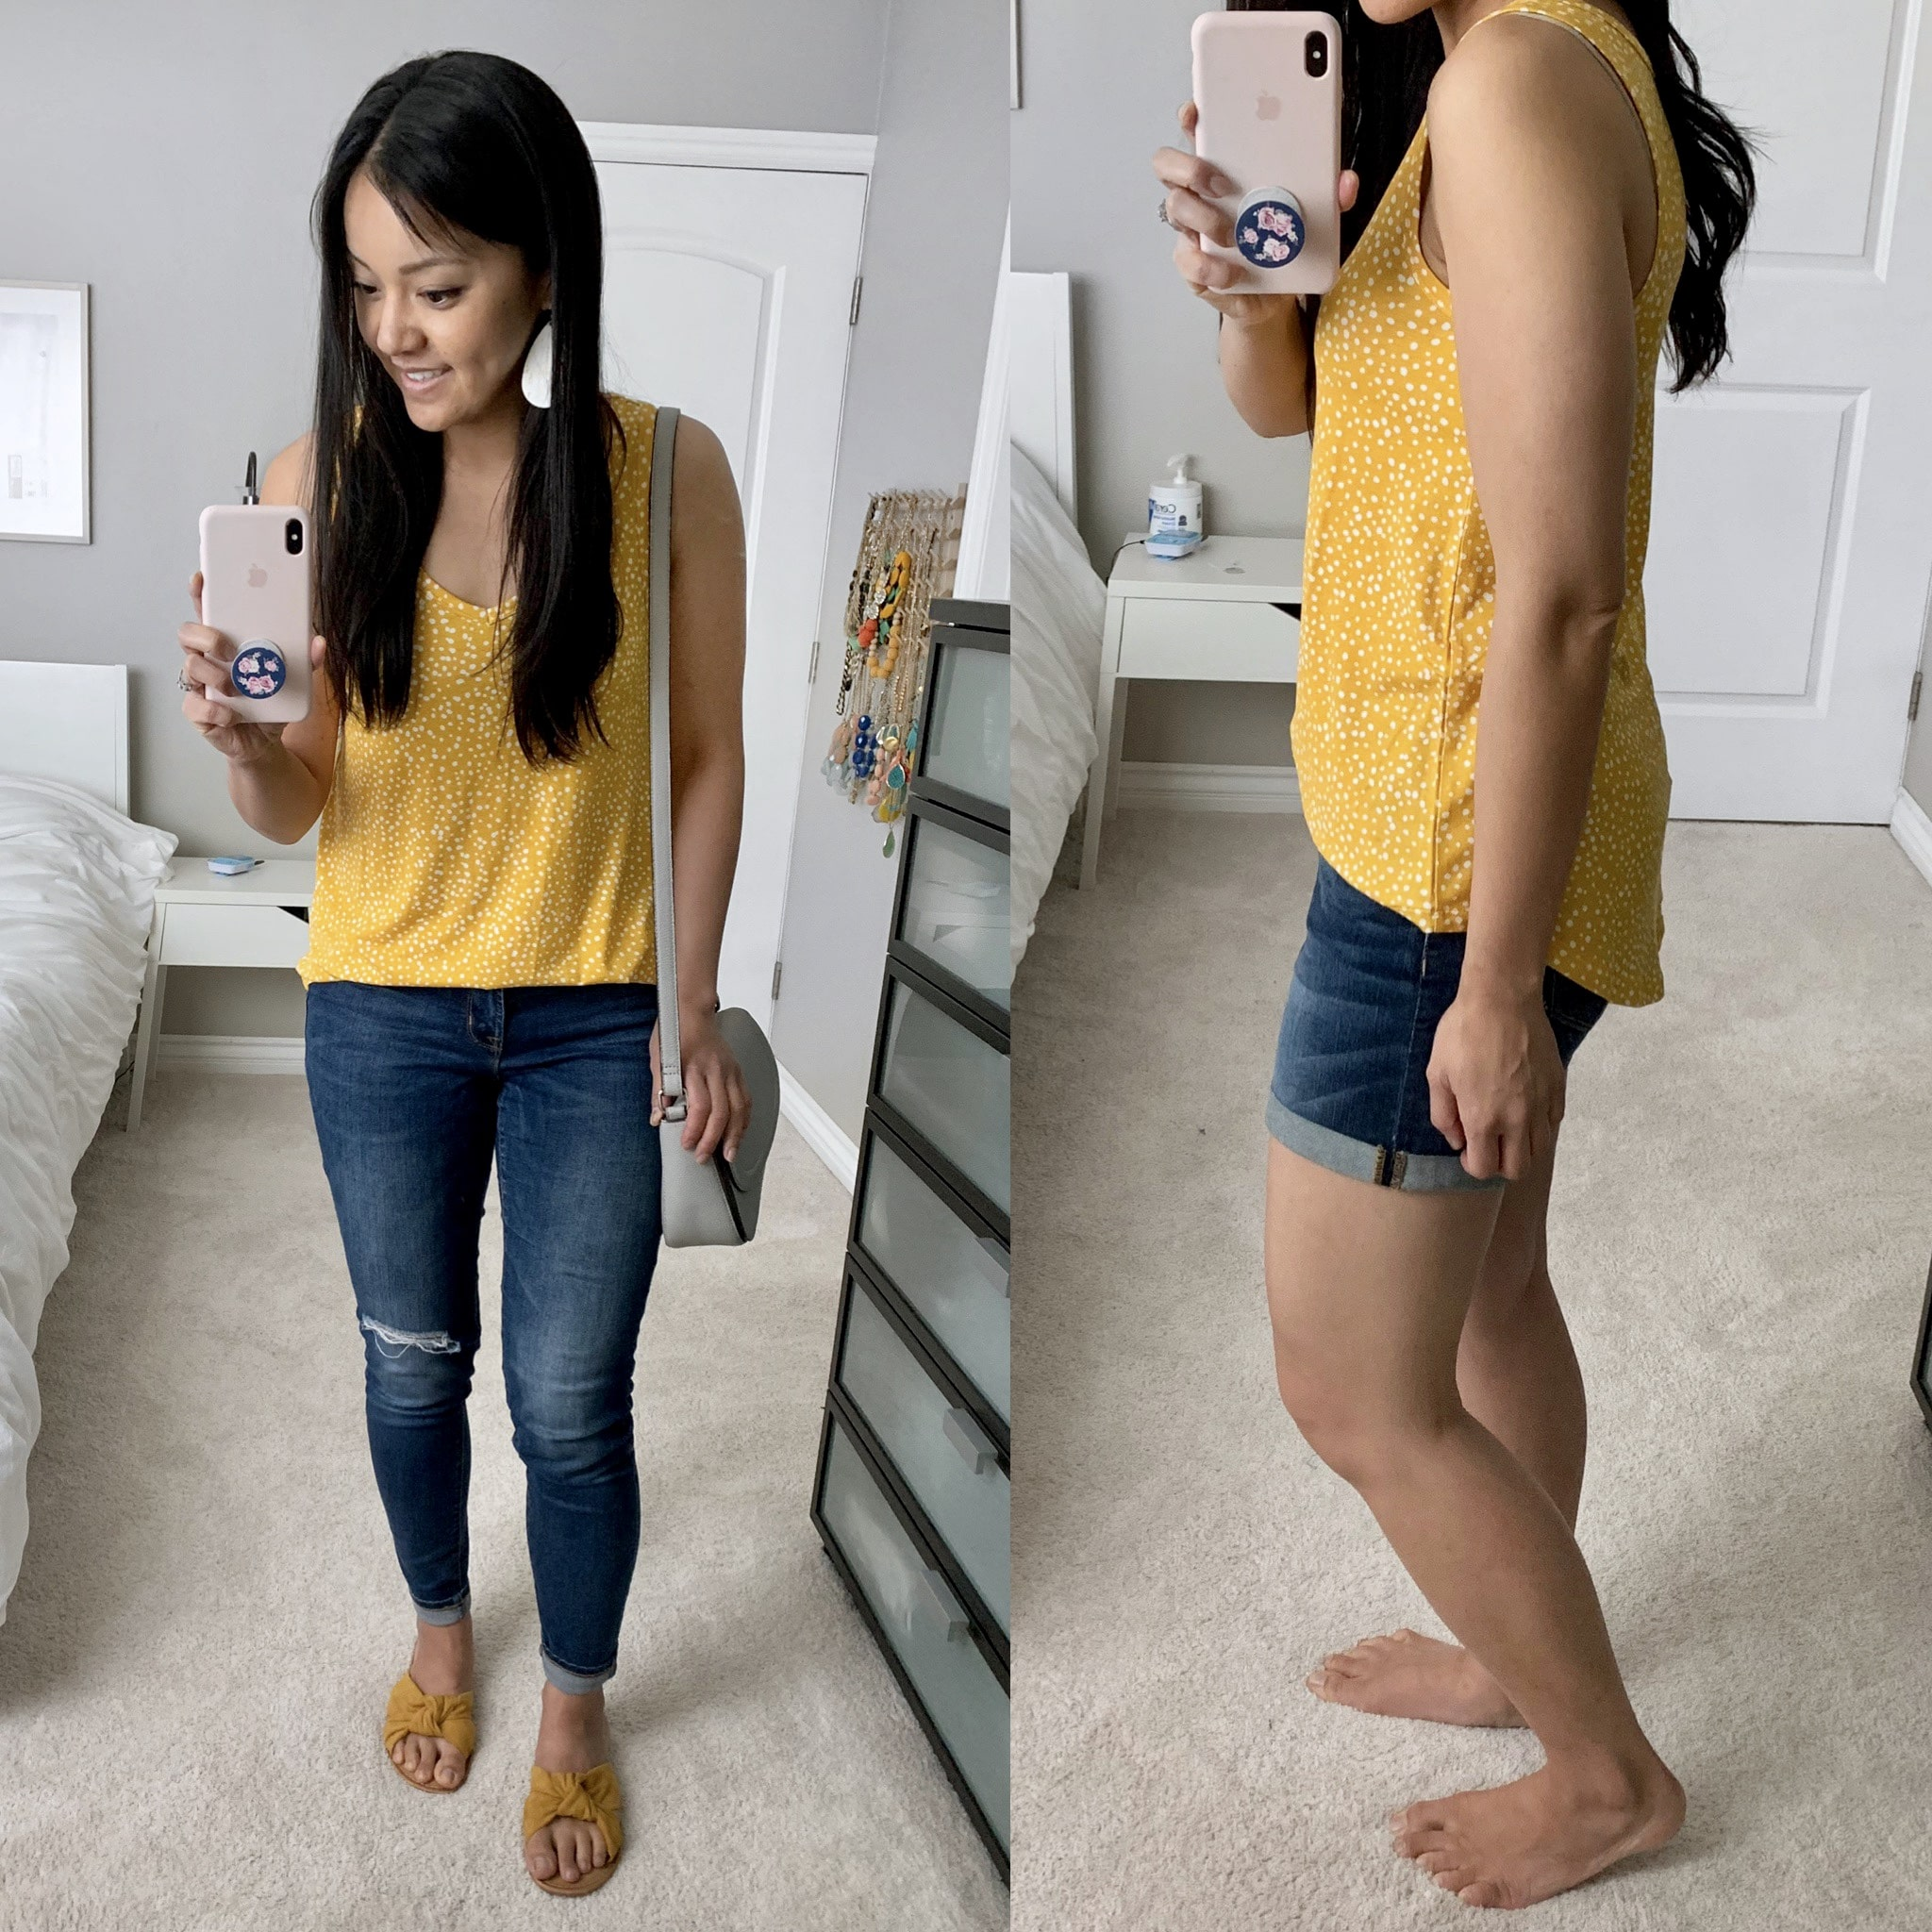 jcpenney yellow tank review